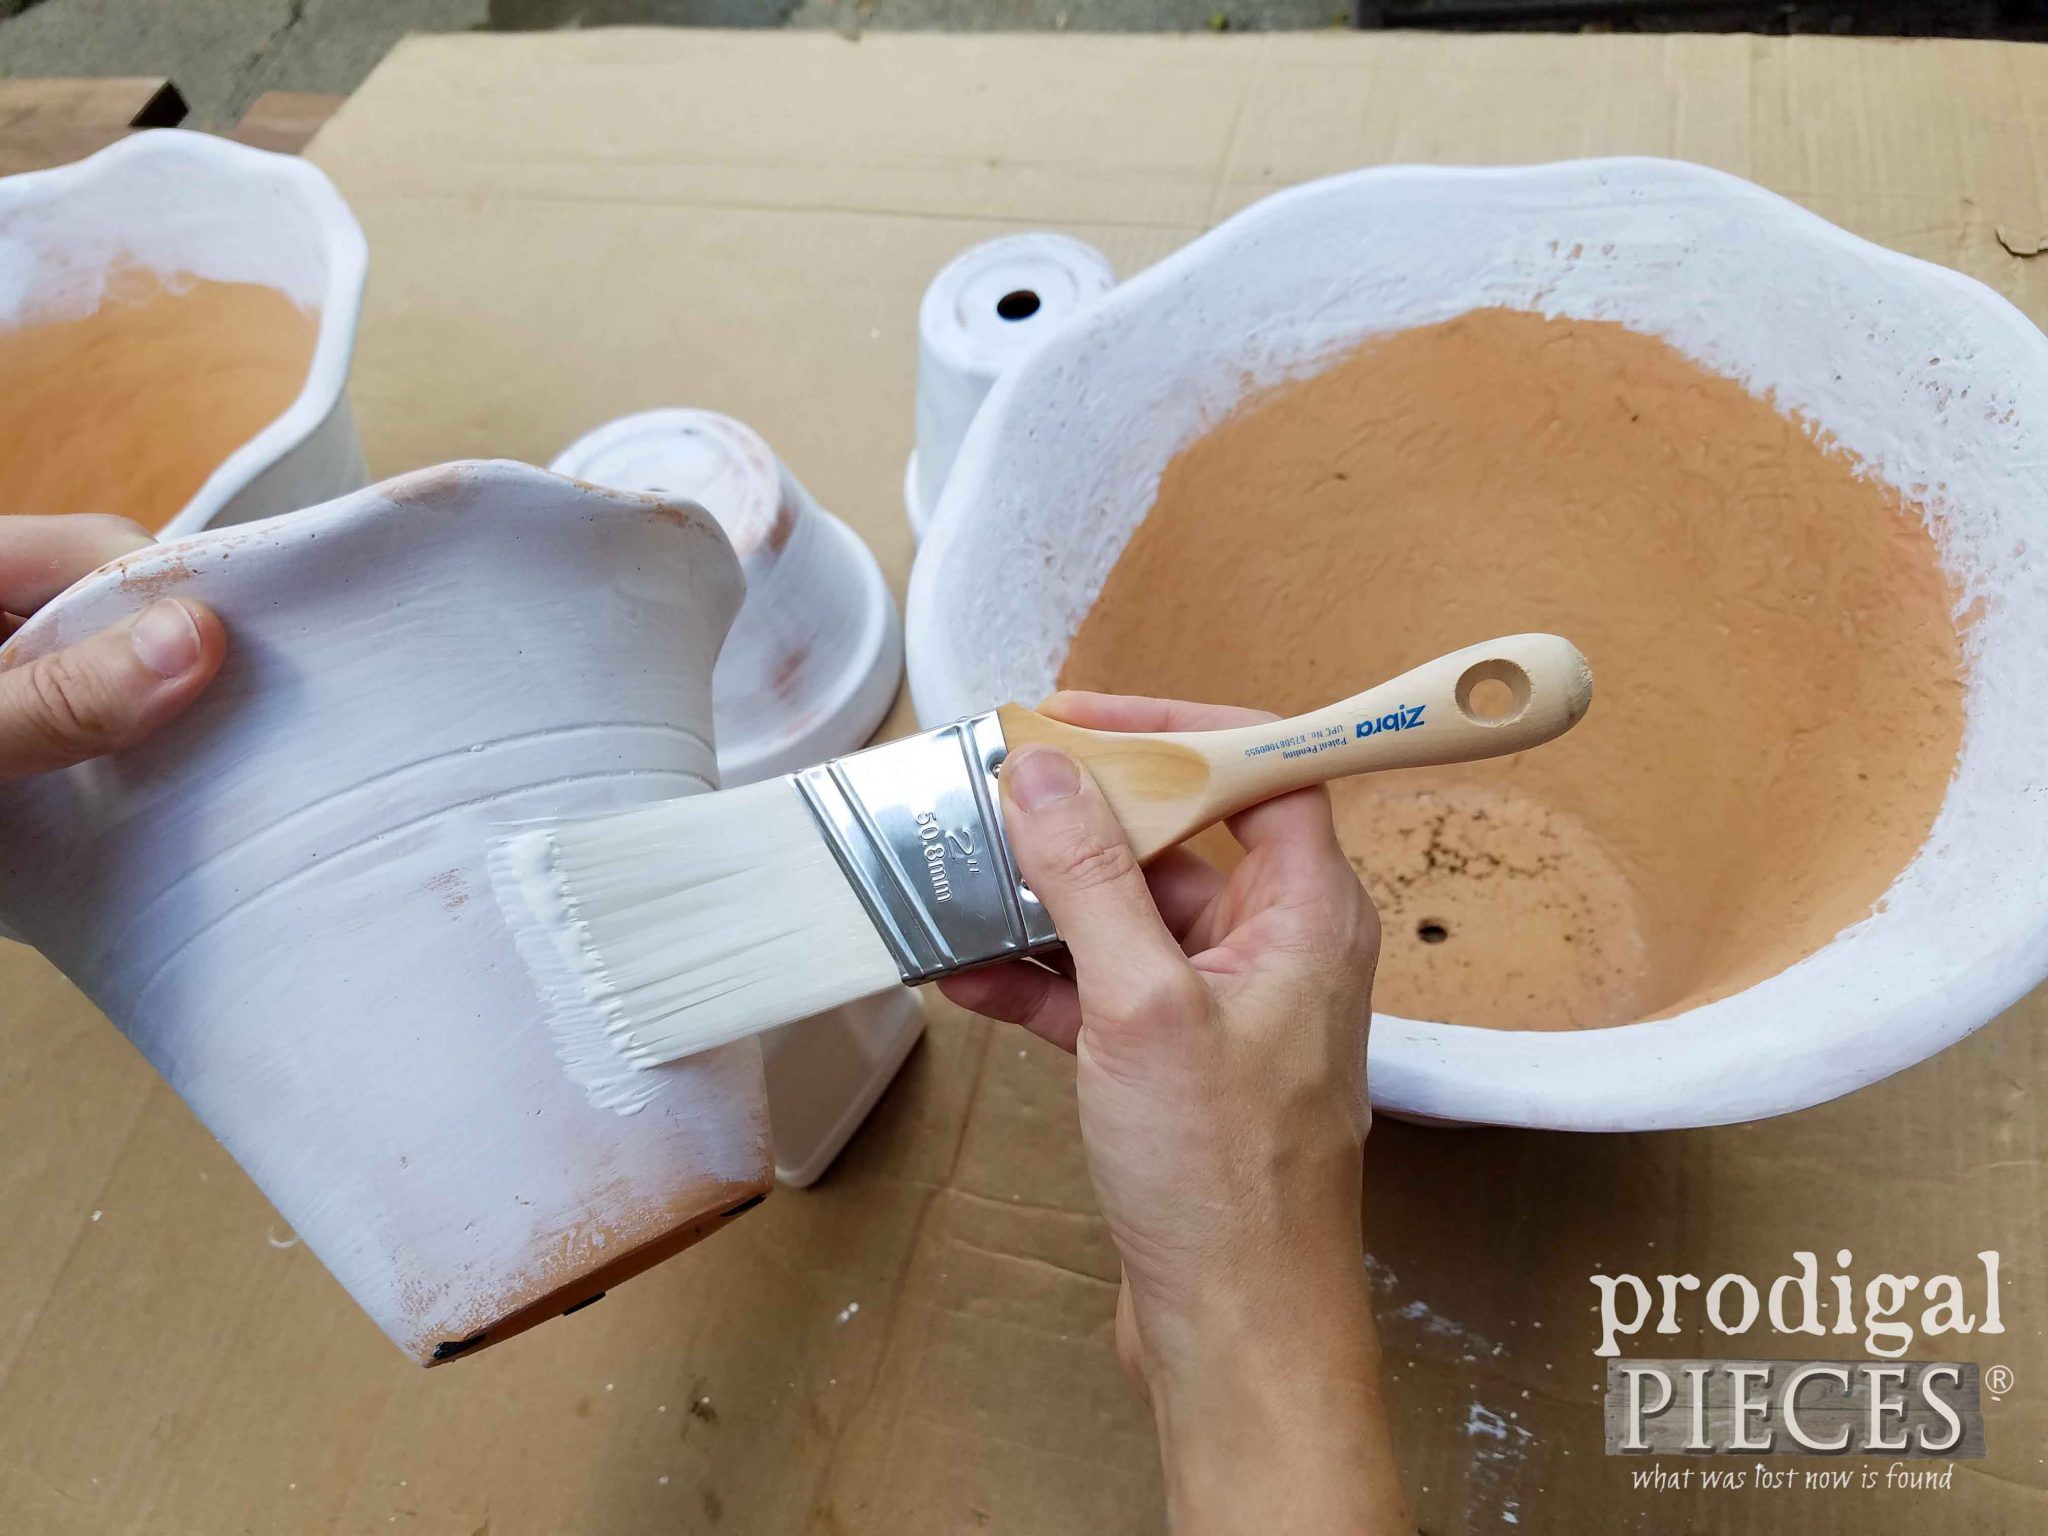 Whitewashing Pots for DIY tiered planter by Prodigal Pieces | prodigalpieces.com